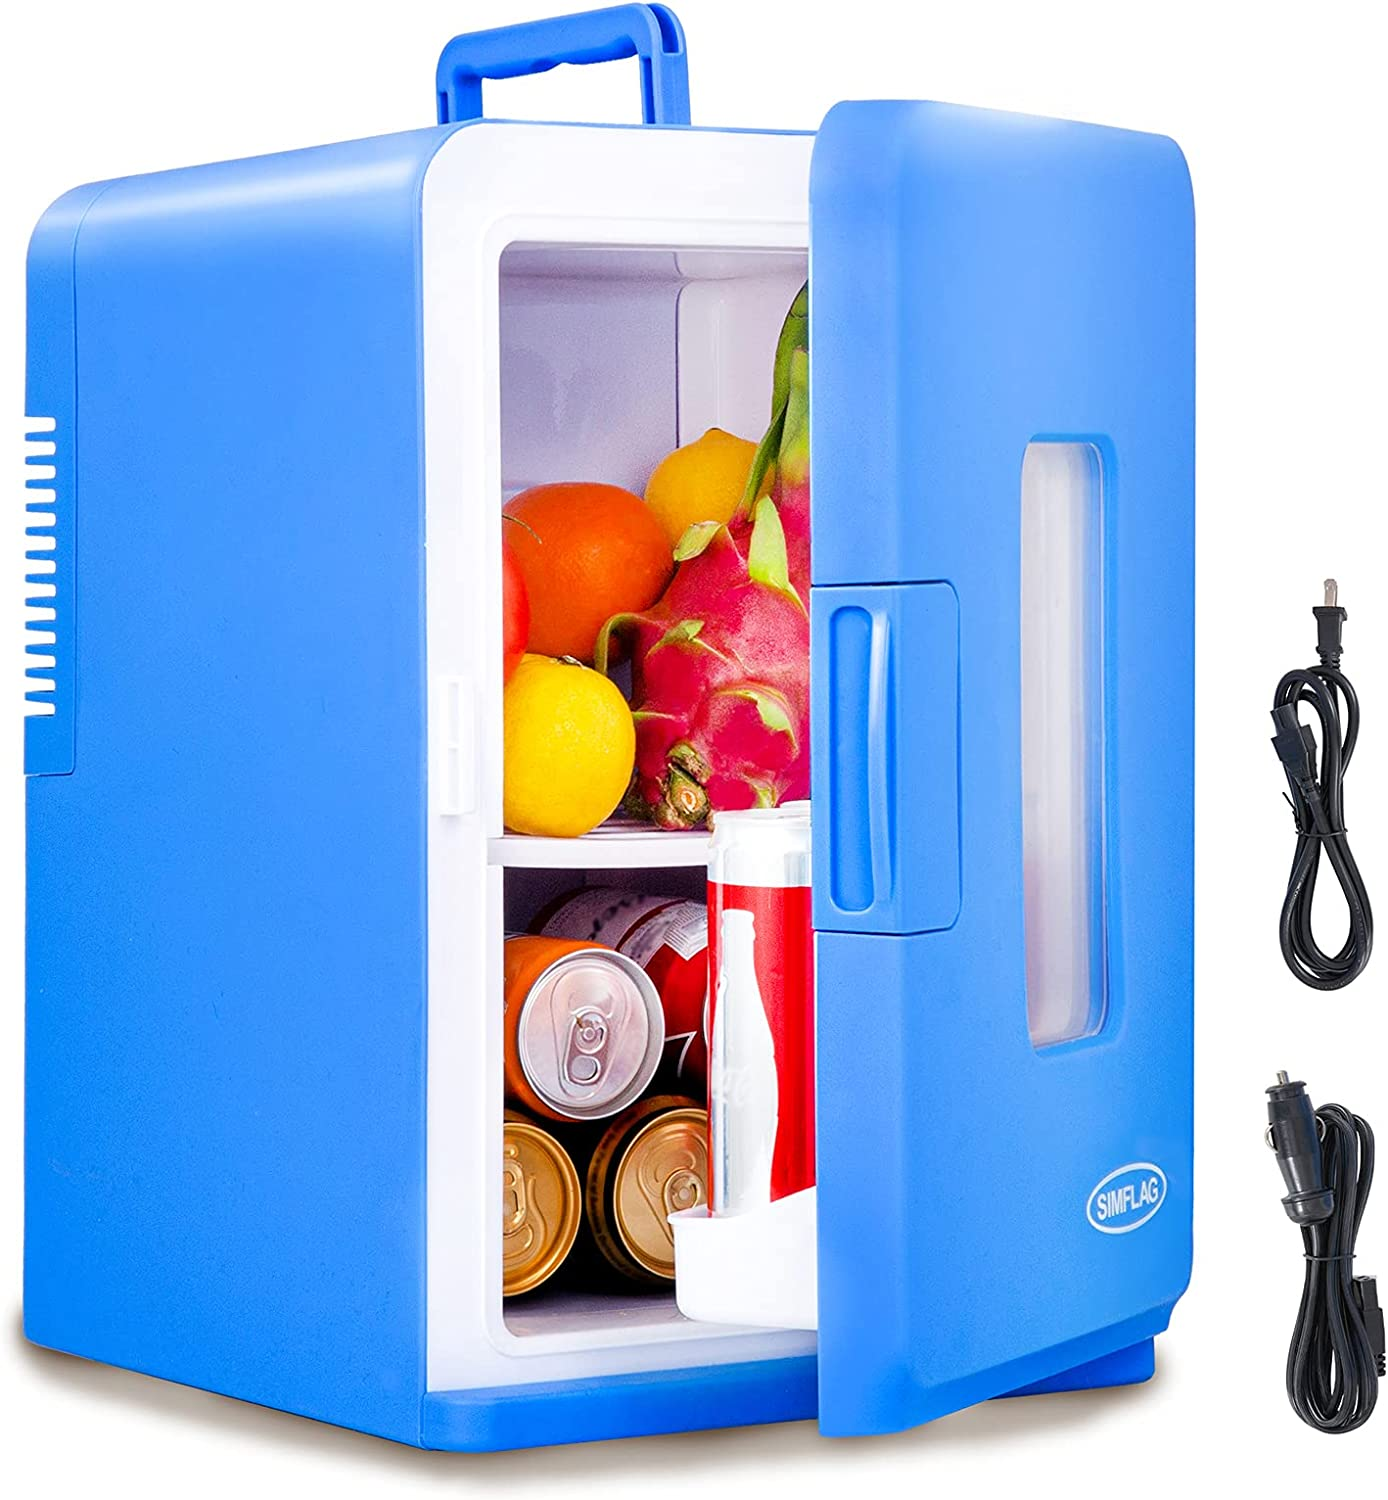 SIMFLAG Mini Fridge 15 Liter, AC/DC Portable Fridge,Compact Cooler and Warmer Small Refridgerater for Bedroom, Home,Office,Dorm, RV,Travel, Skin Care and Foods Storage(Blue)